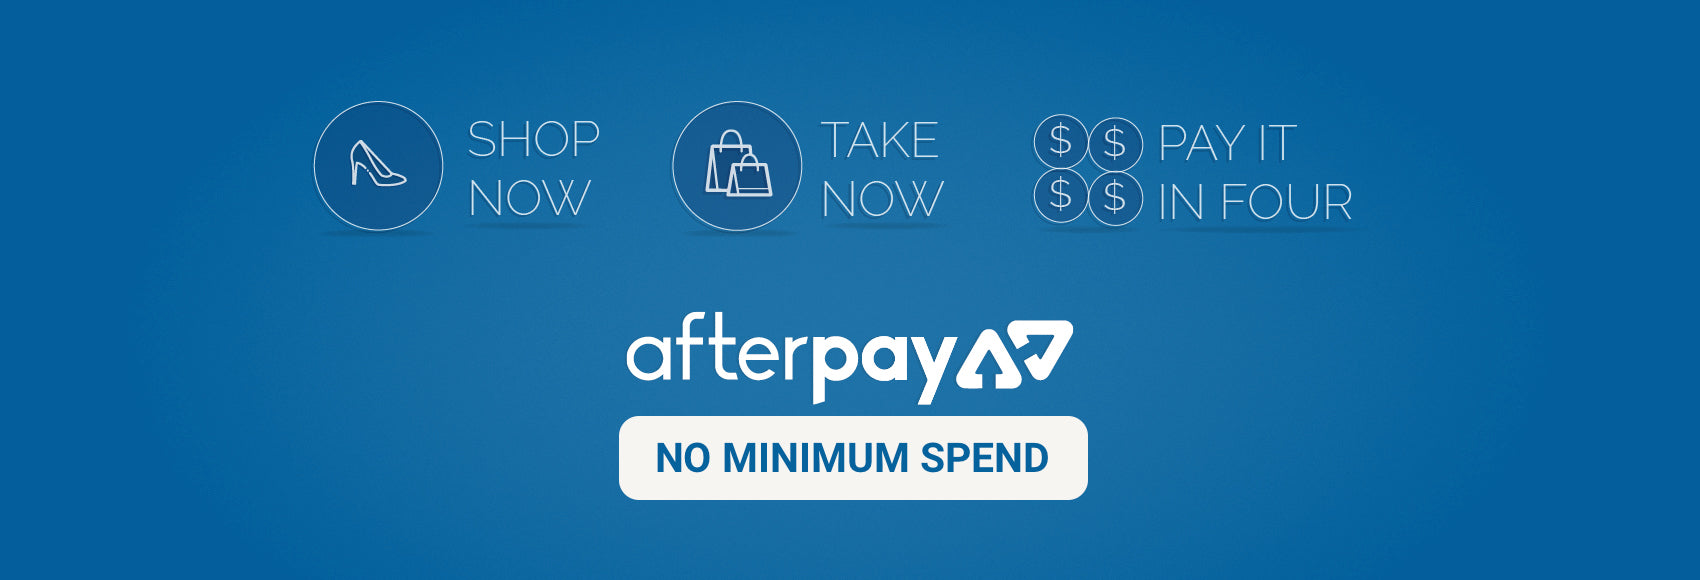 Afterpay available no minimum spend bella scoop